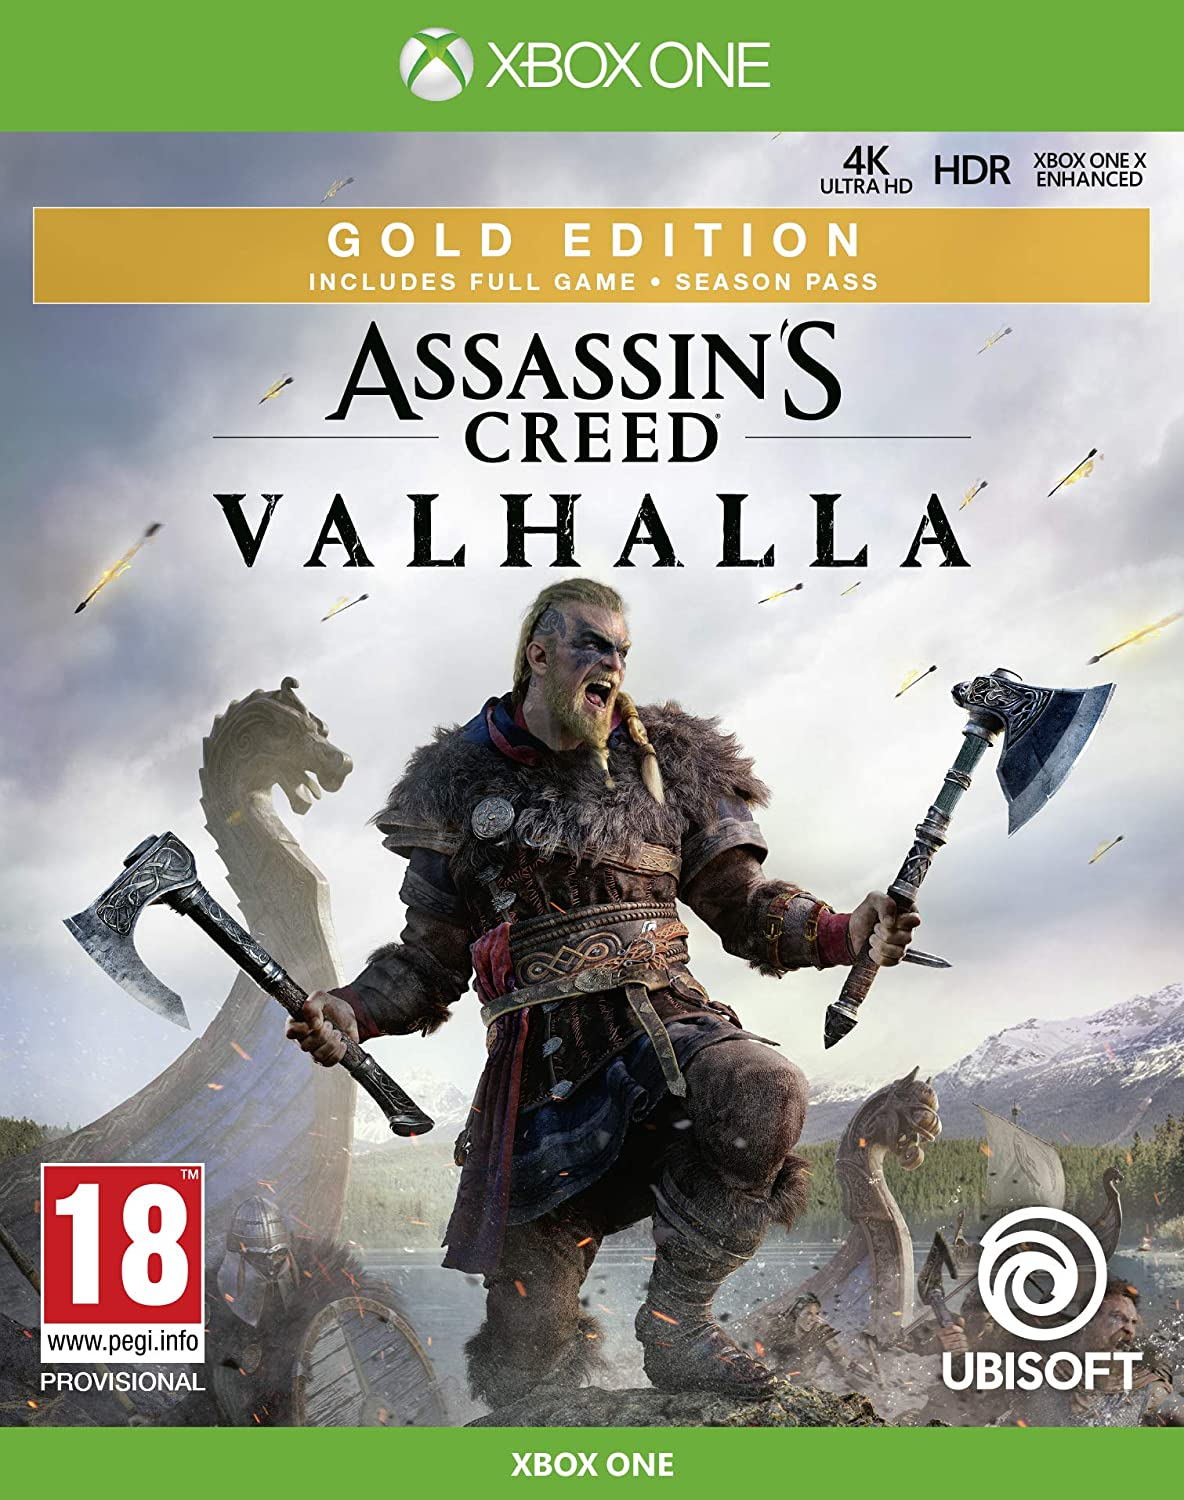 Assassin S Creed Valhalla Pre Order Guide The Version You Should Buy